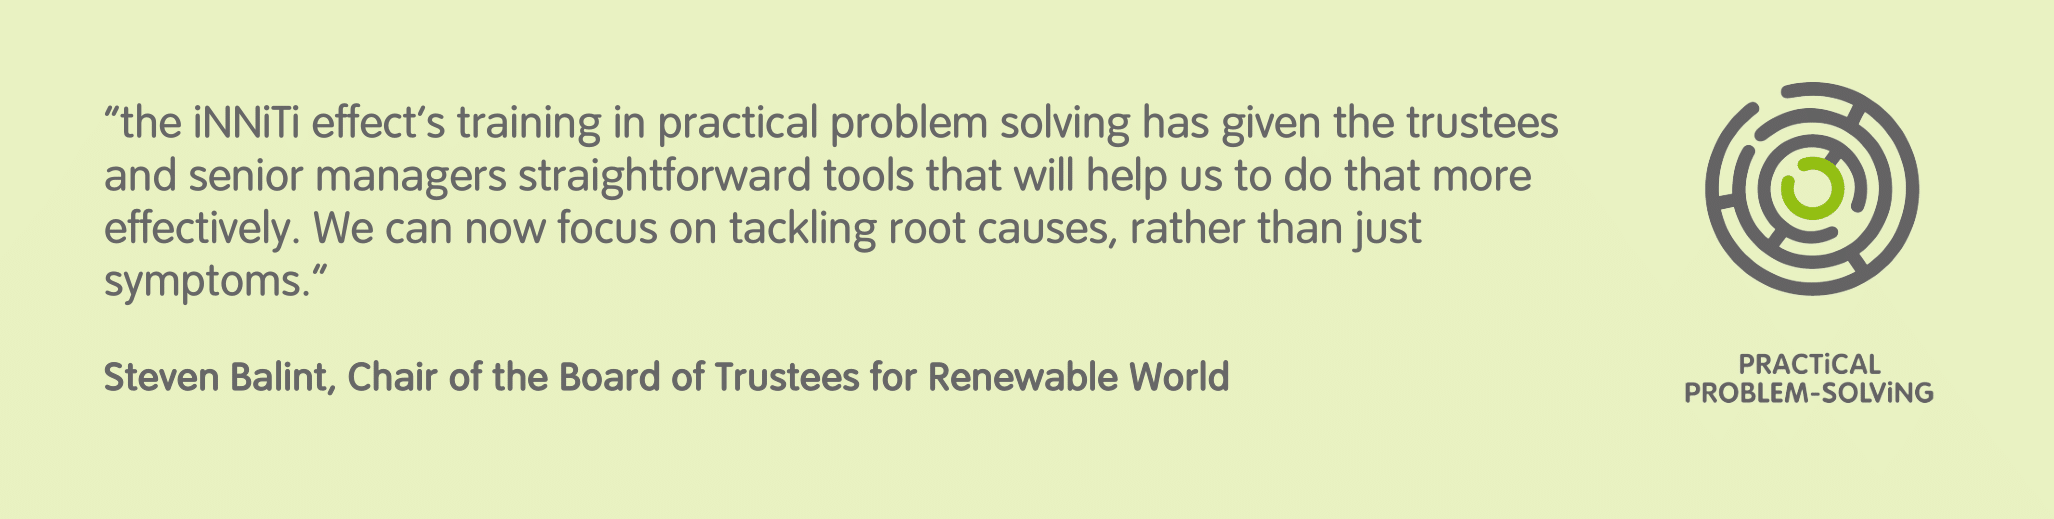 Renewable World testimonial